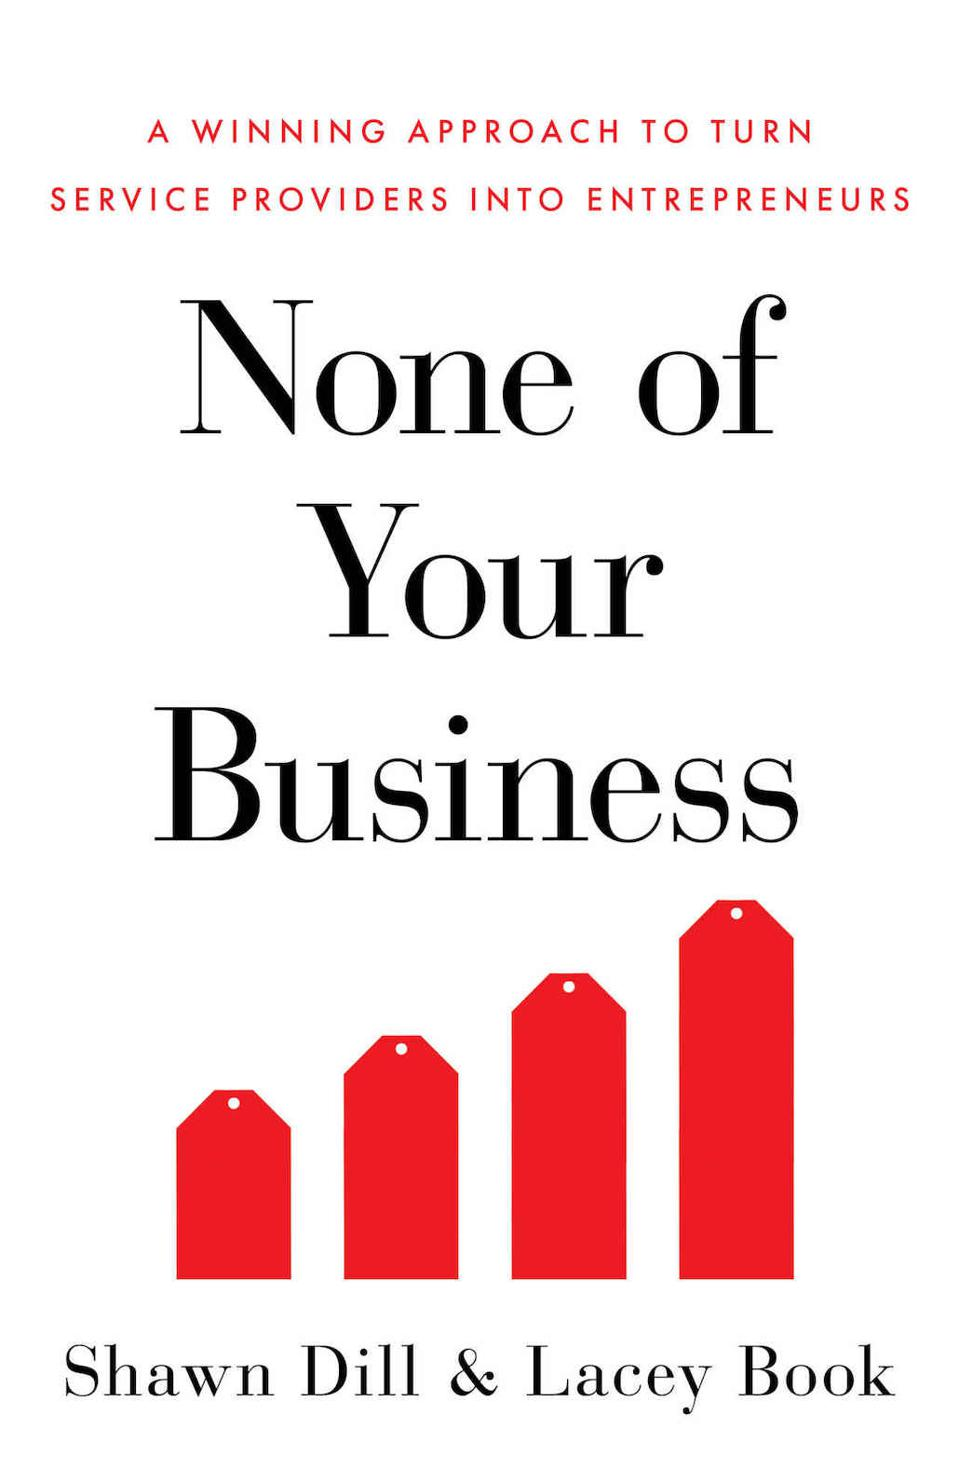 None of Your Business: A Winning Approach to Turn Service Providers into Entrepreneurs by Shawn Dill and Lacey Book